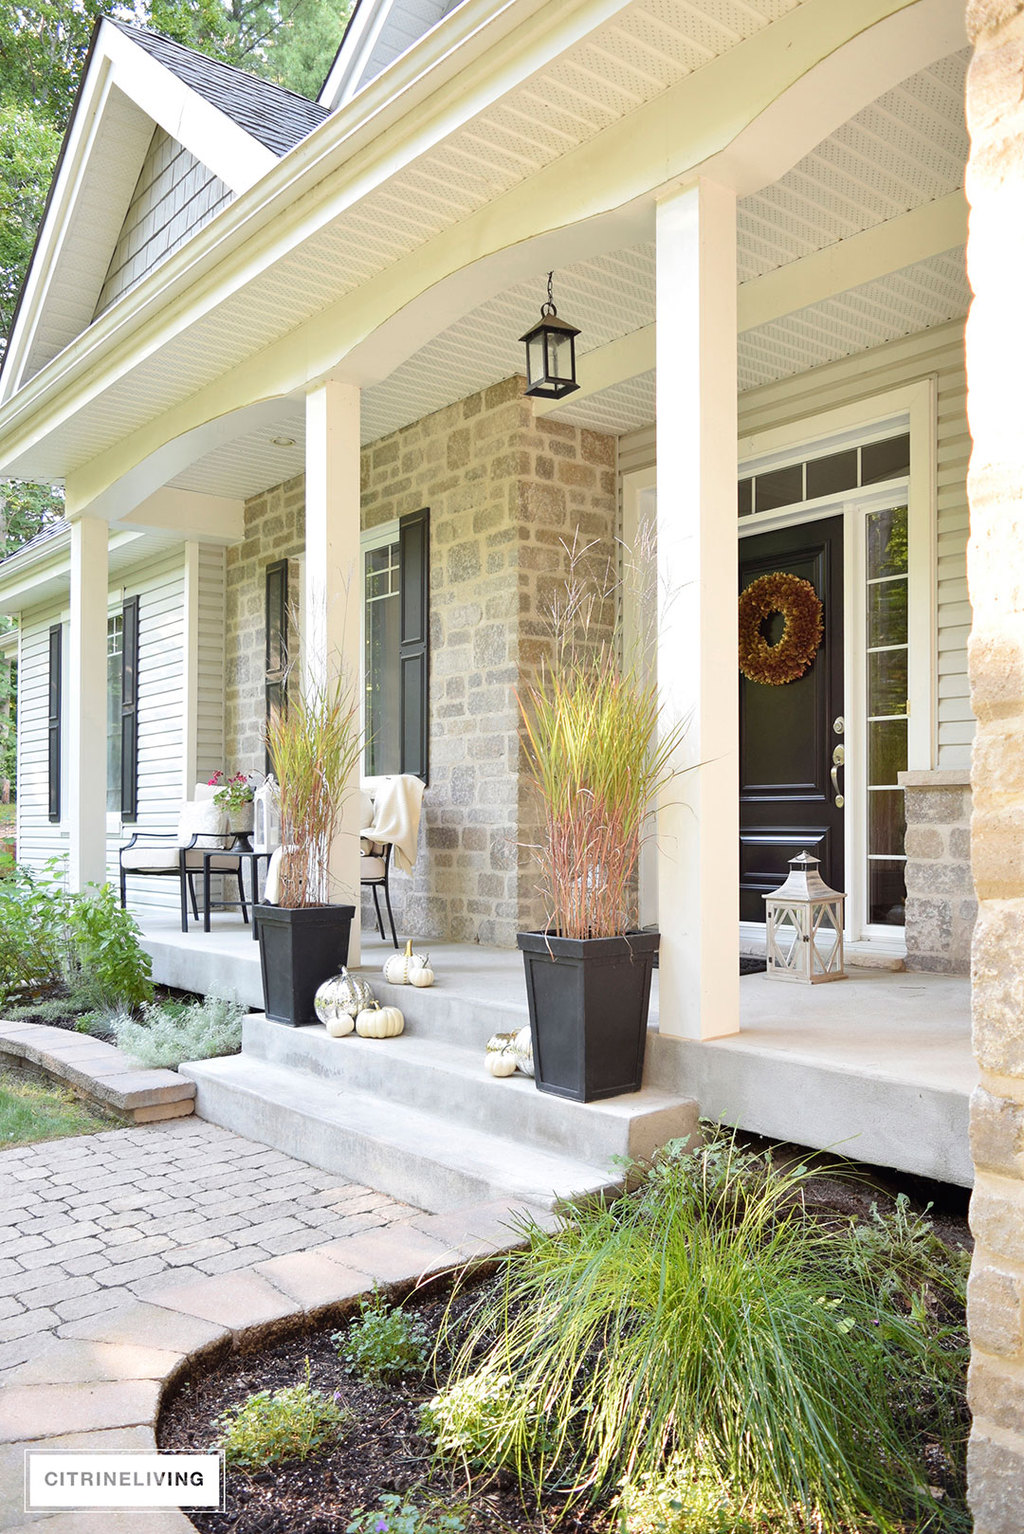 Grey and white hime exterior with black details - Fall porch decor featuring mercury glass pumpkins and potted grass